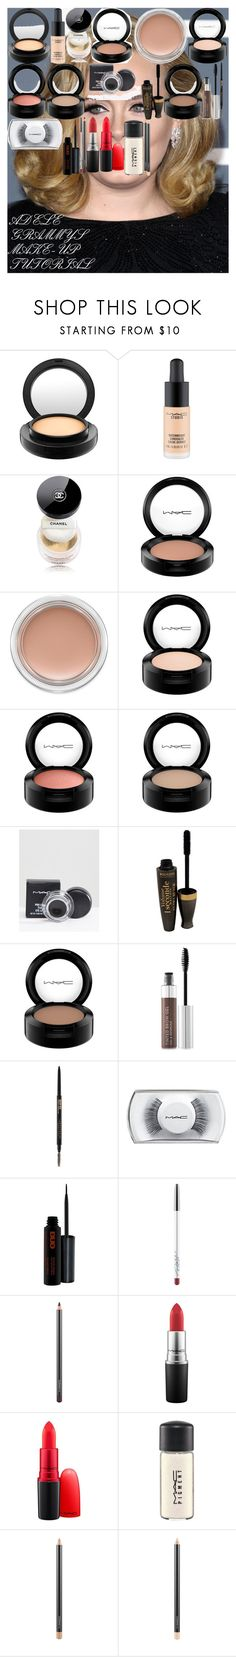 ADELE GRAMMYS MAKE-UP TUTORIAL by oroartyellie on Polyvore featuring beauty, Chanel, MAC Cosmetics, Anastasia Beverly Hills and Bourjois